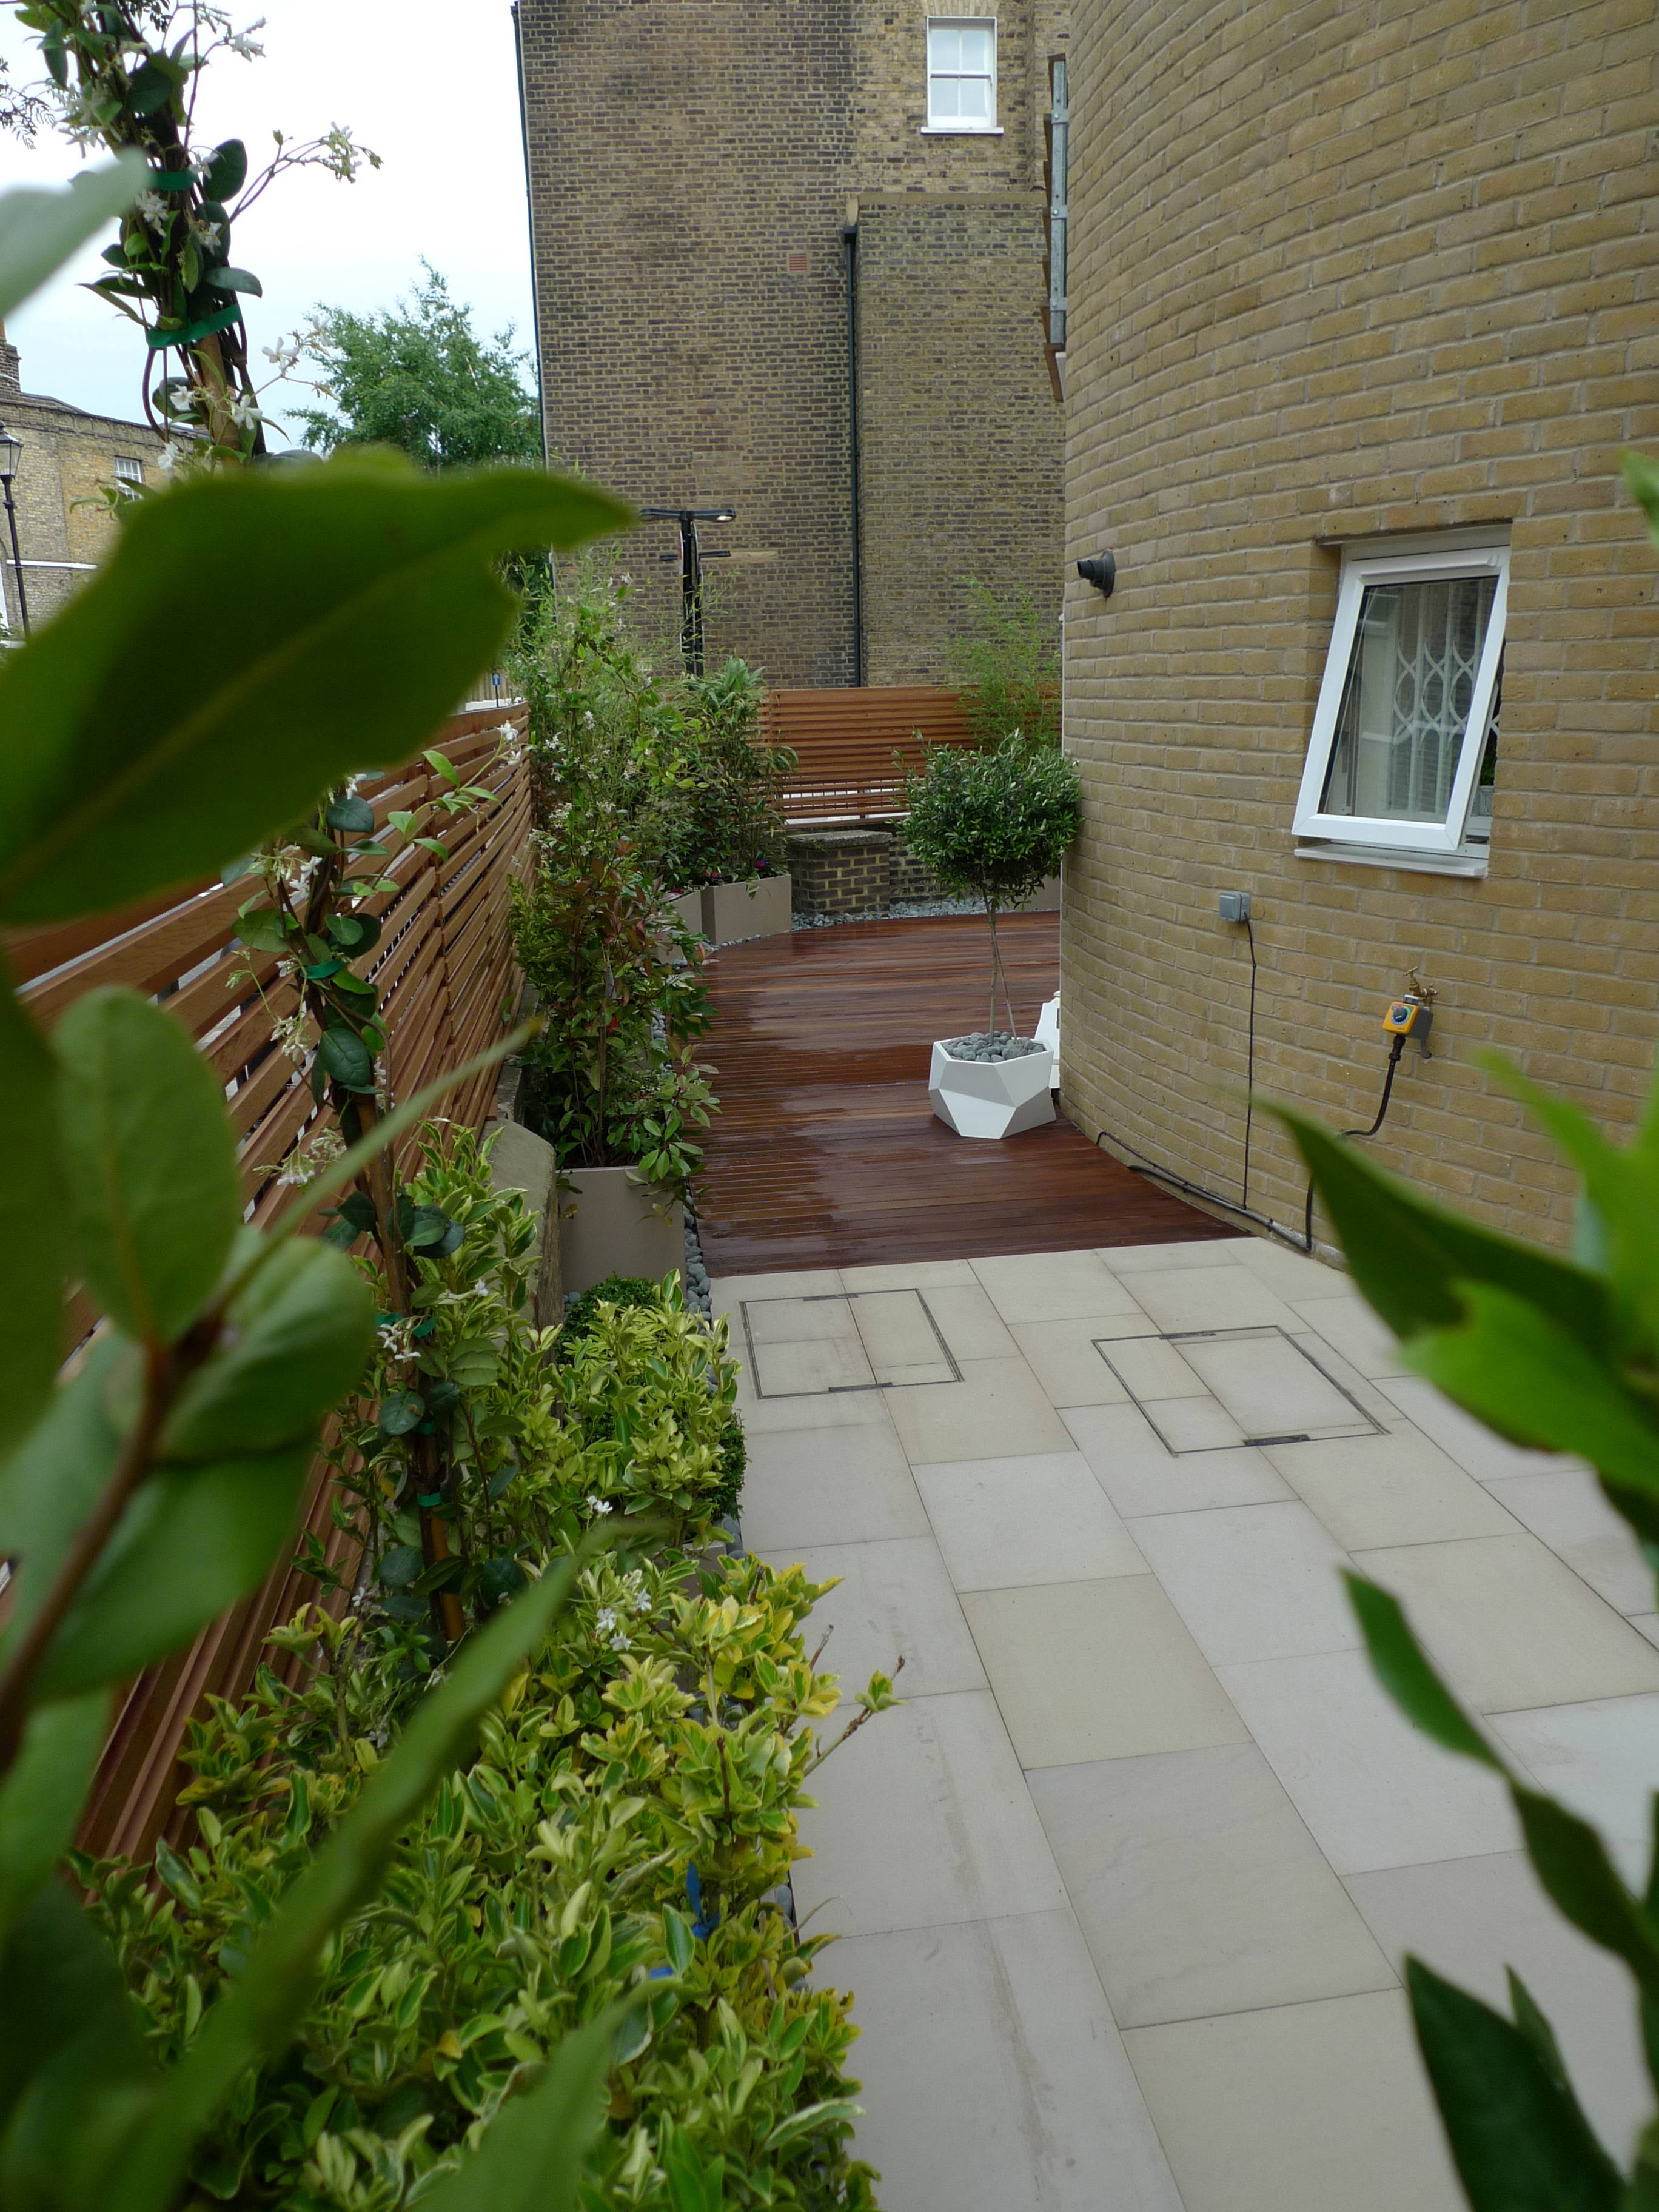 sawn-sandstone-paving-london-islington-patio.JPG